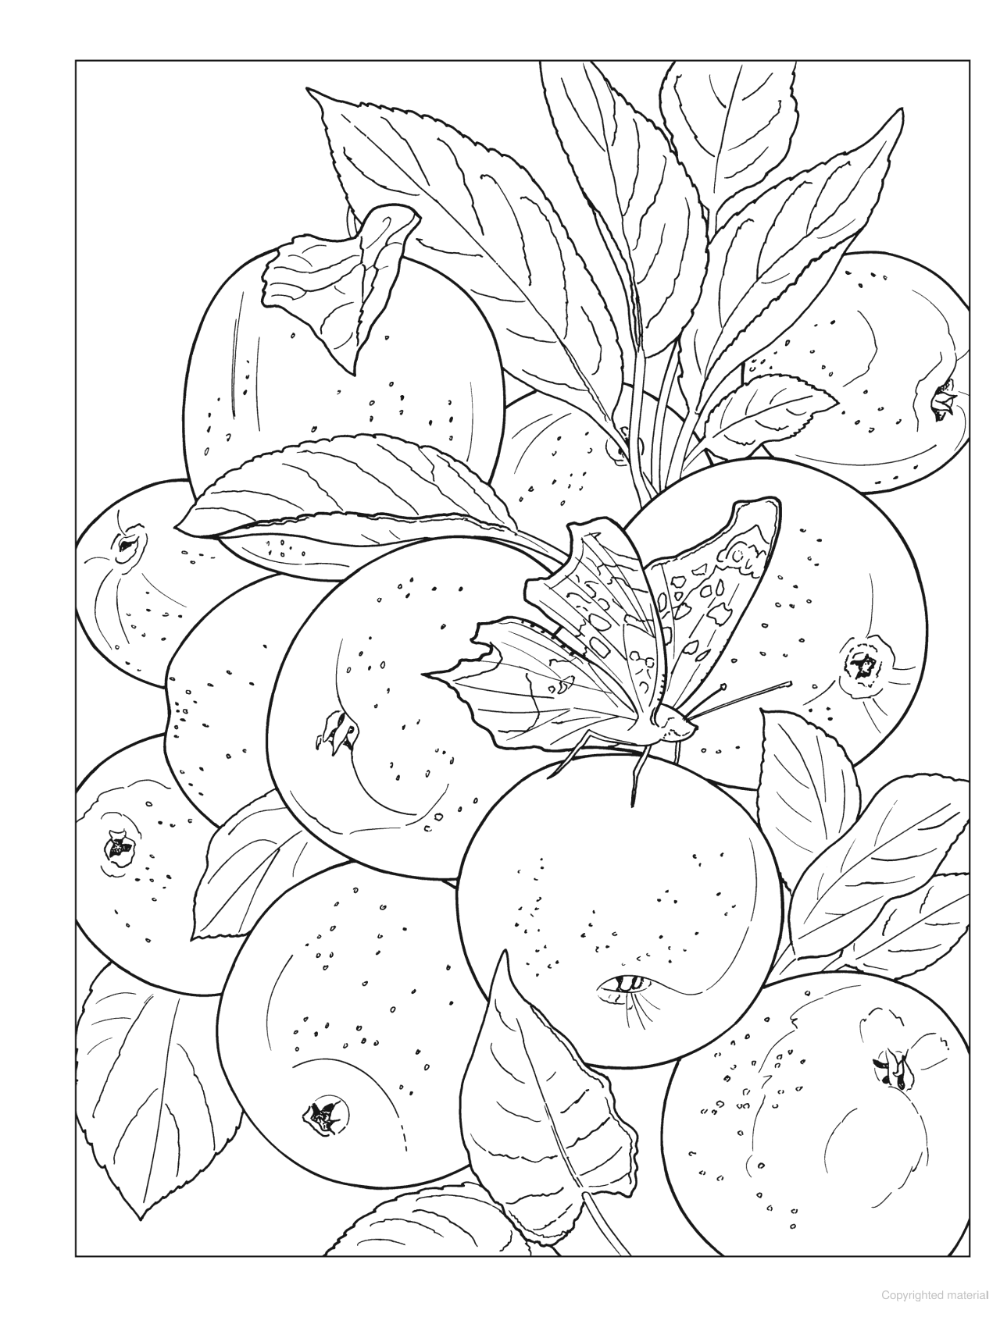 Creative Haven Beautiful Nature Designs Coloring Book Designs Coloring Books Nature Design Beautiful Nature